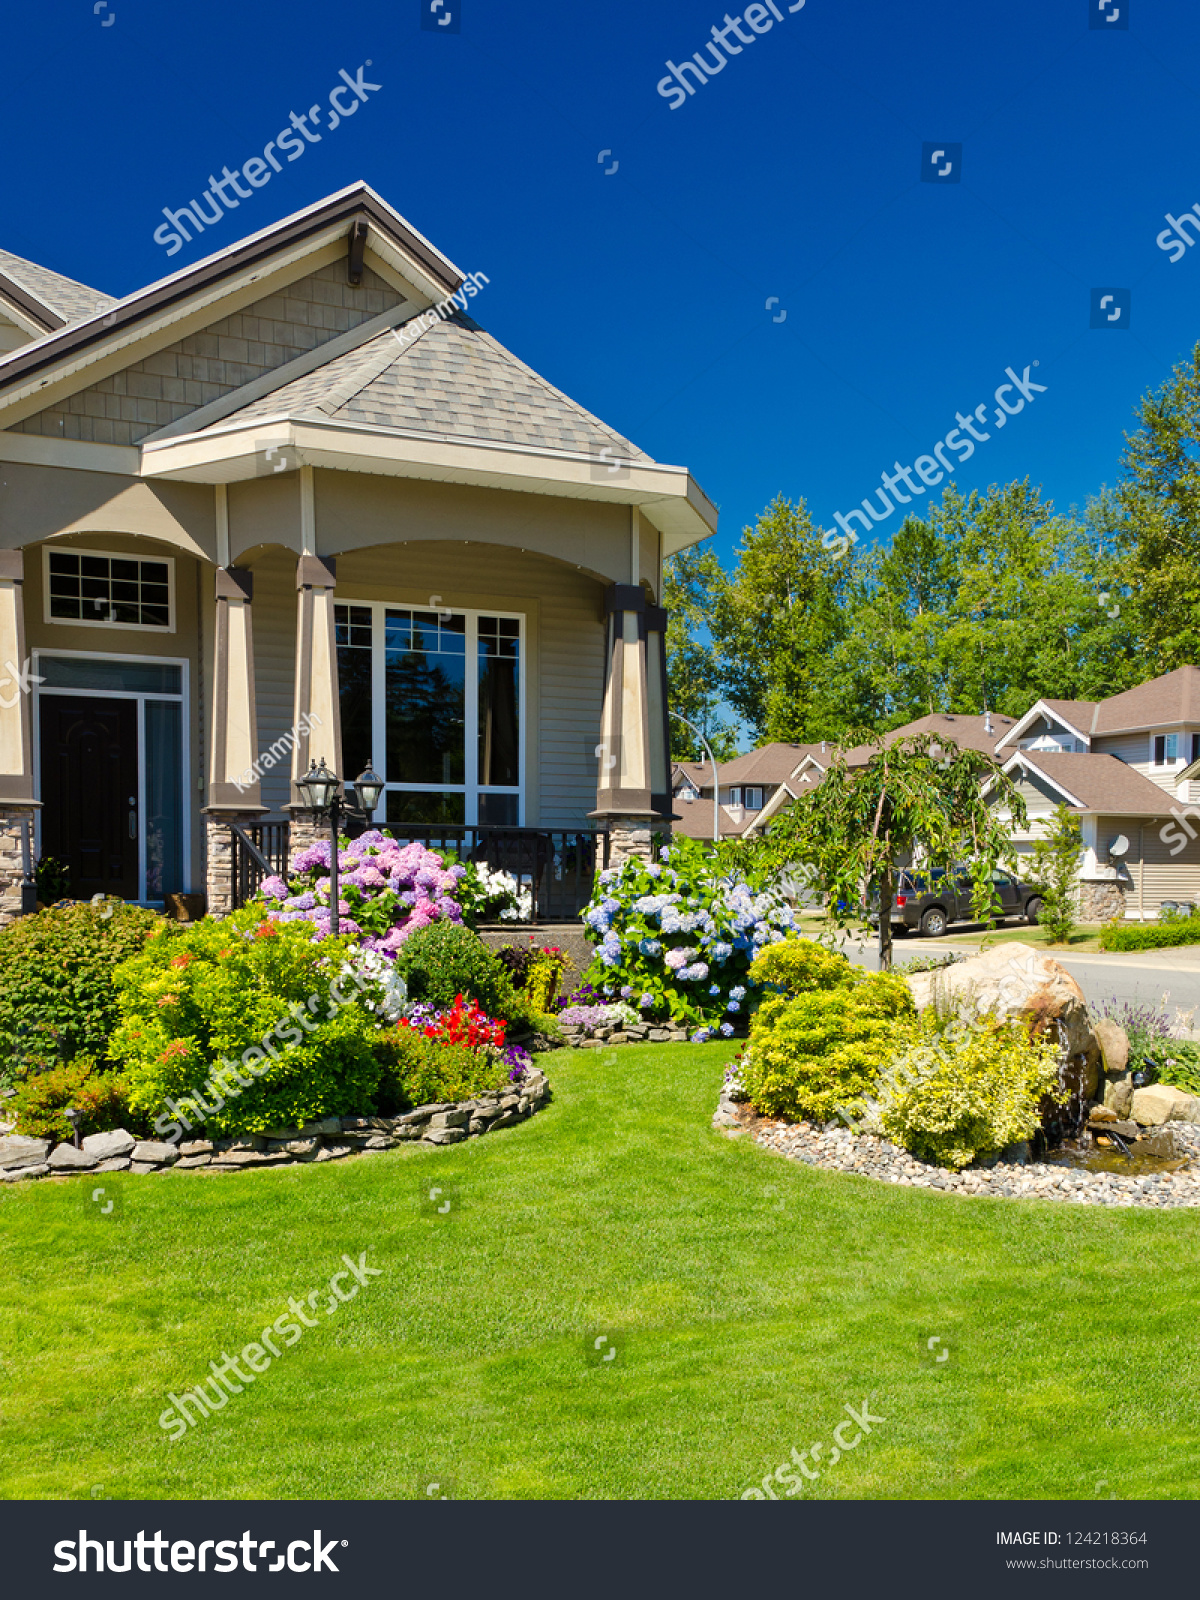 Fragment of a nice house with gorgeous outdoor landscape for Nice home image